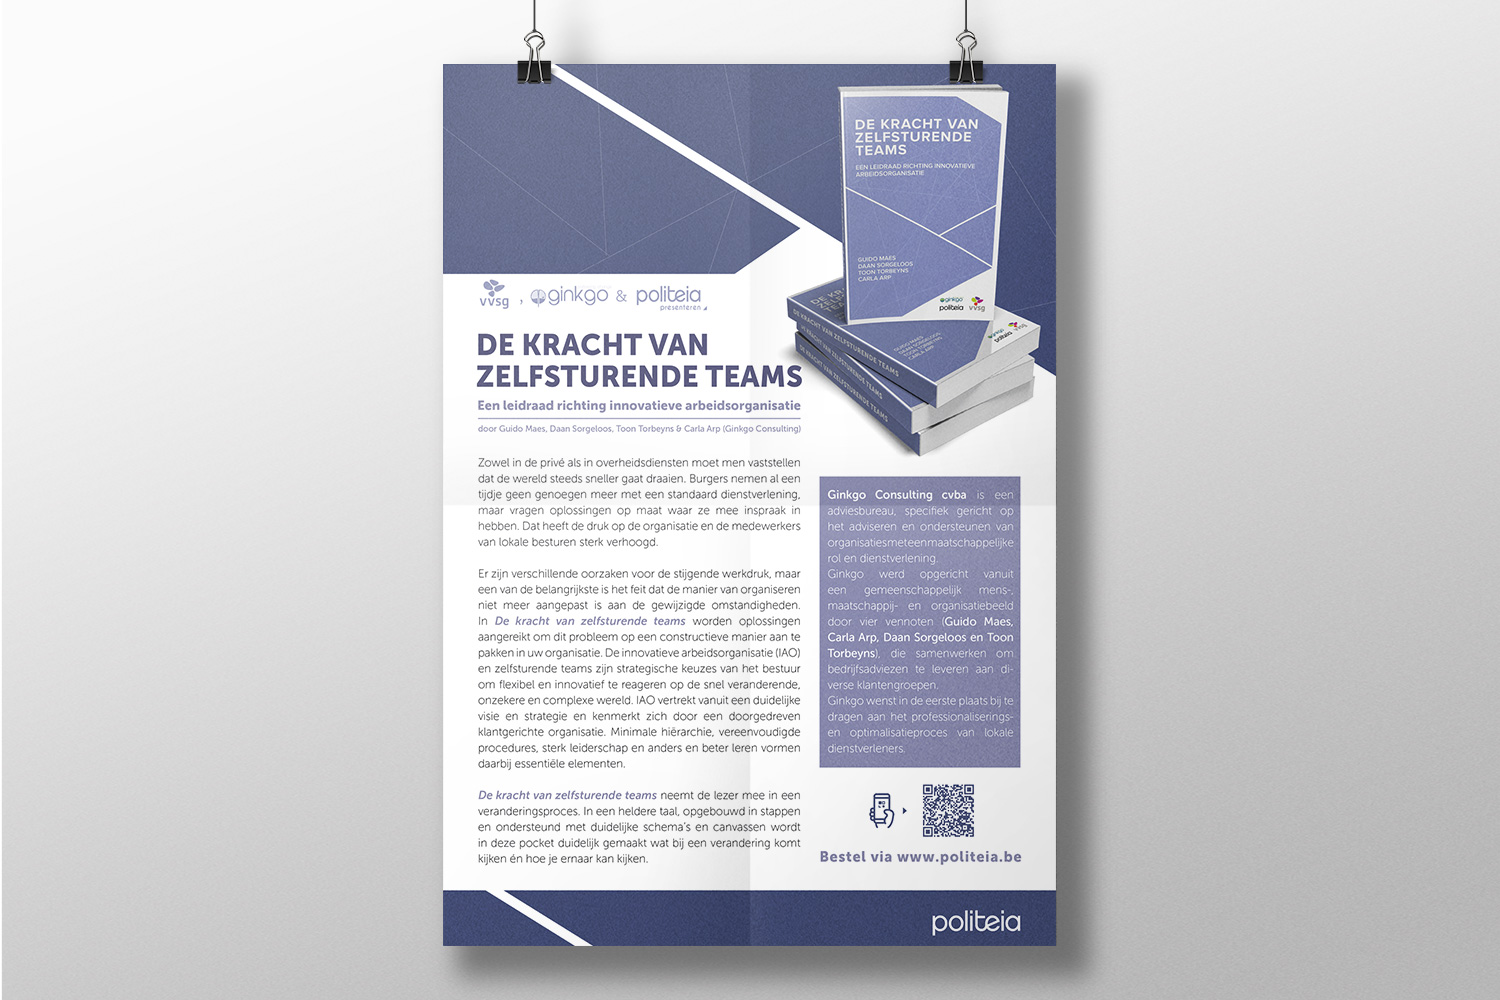 Greyclouds.be - Bert Blondeel | Design for print: Uitgeverij Politeia - add 'Zelfsturende teams'